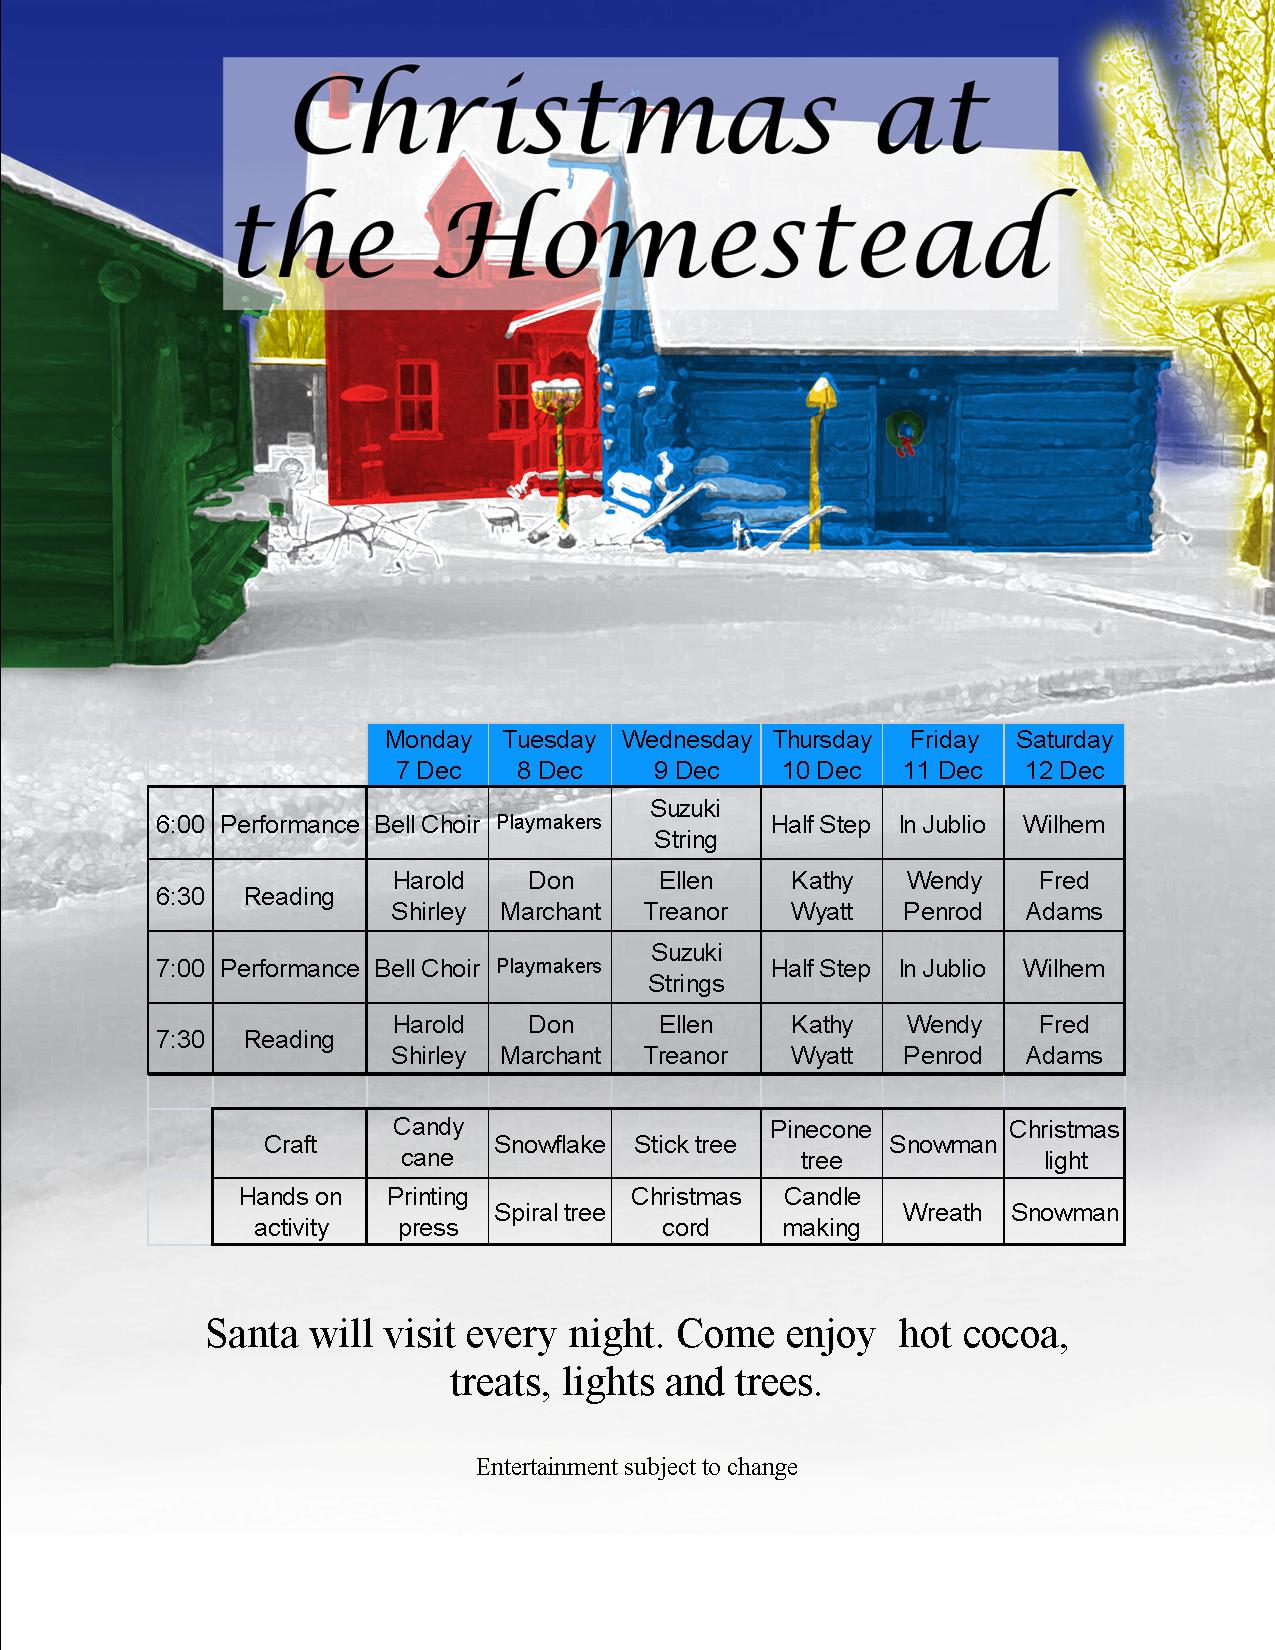 2015 Christmas at the Homestead Schedule